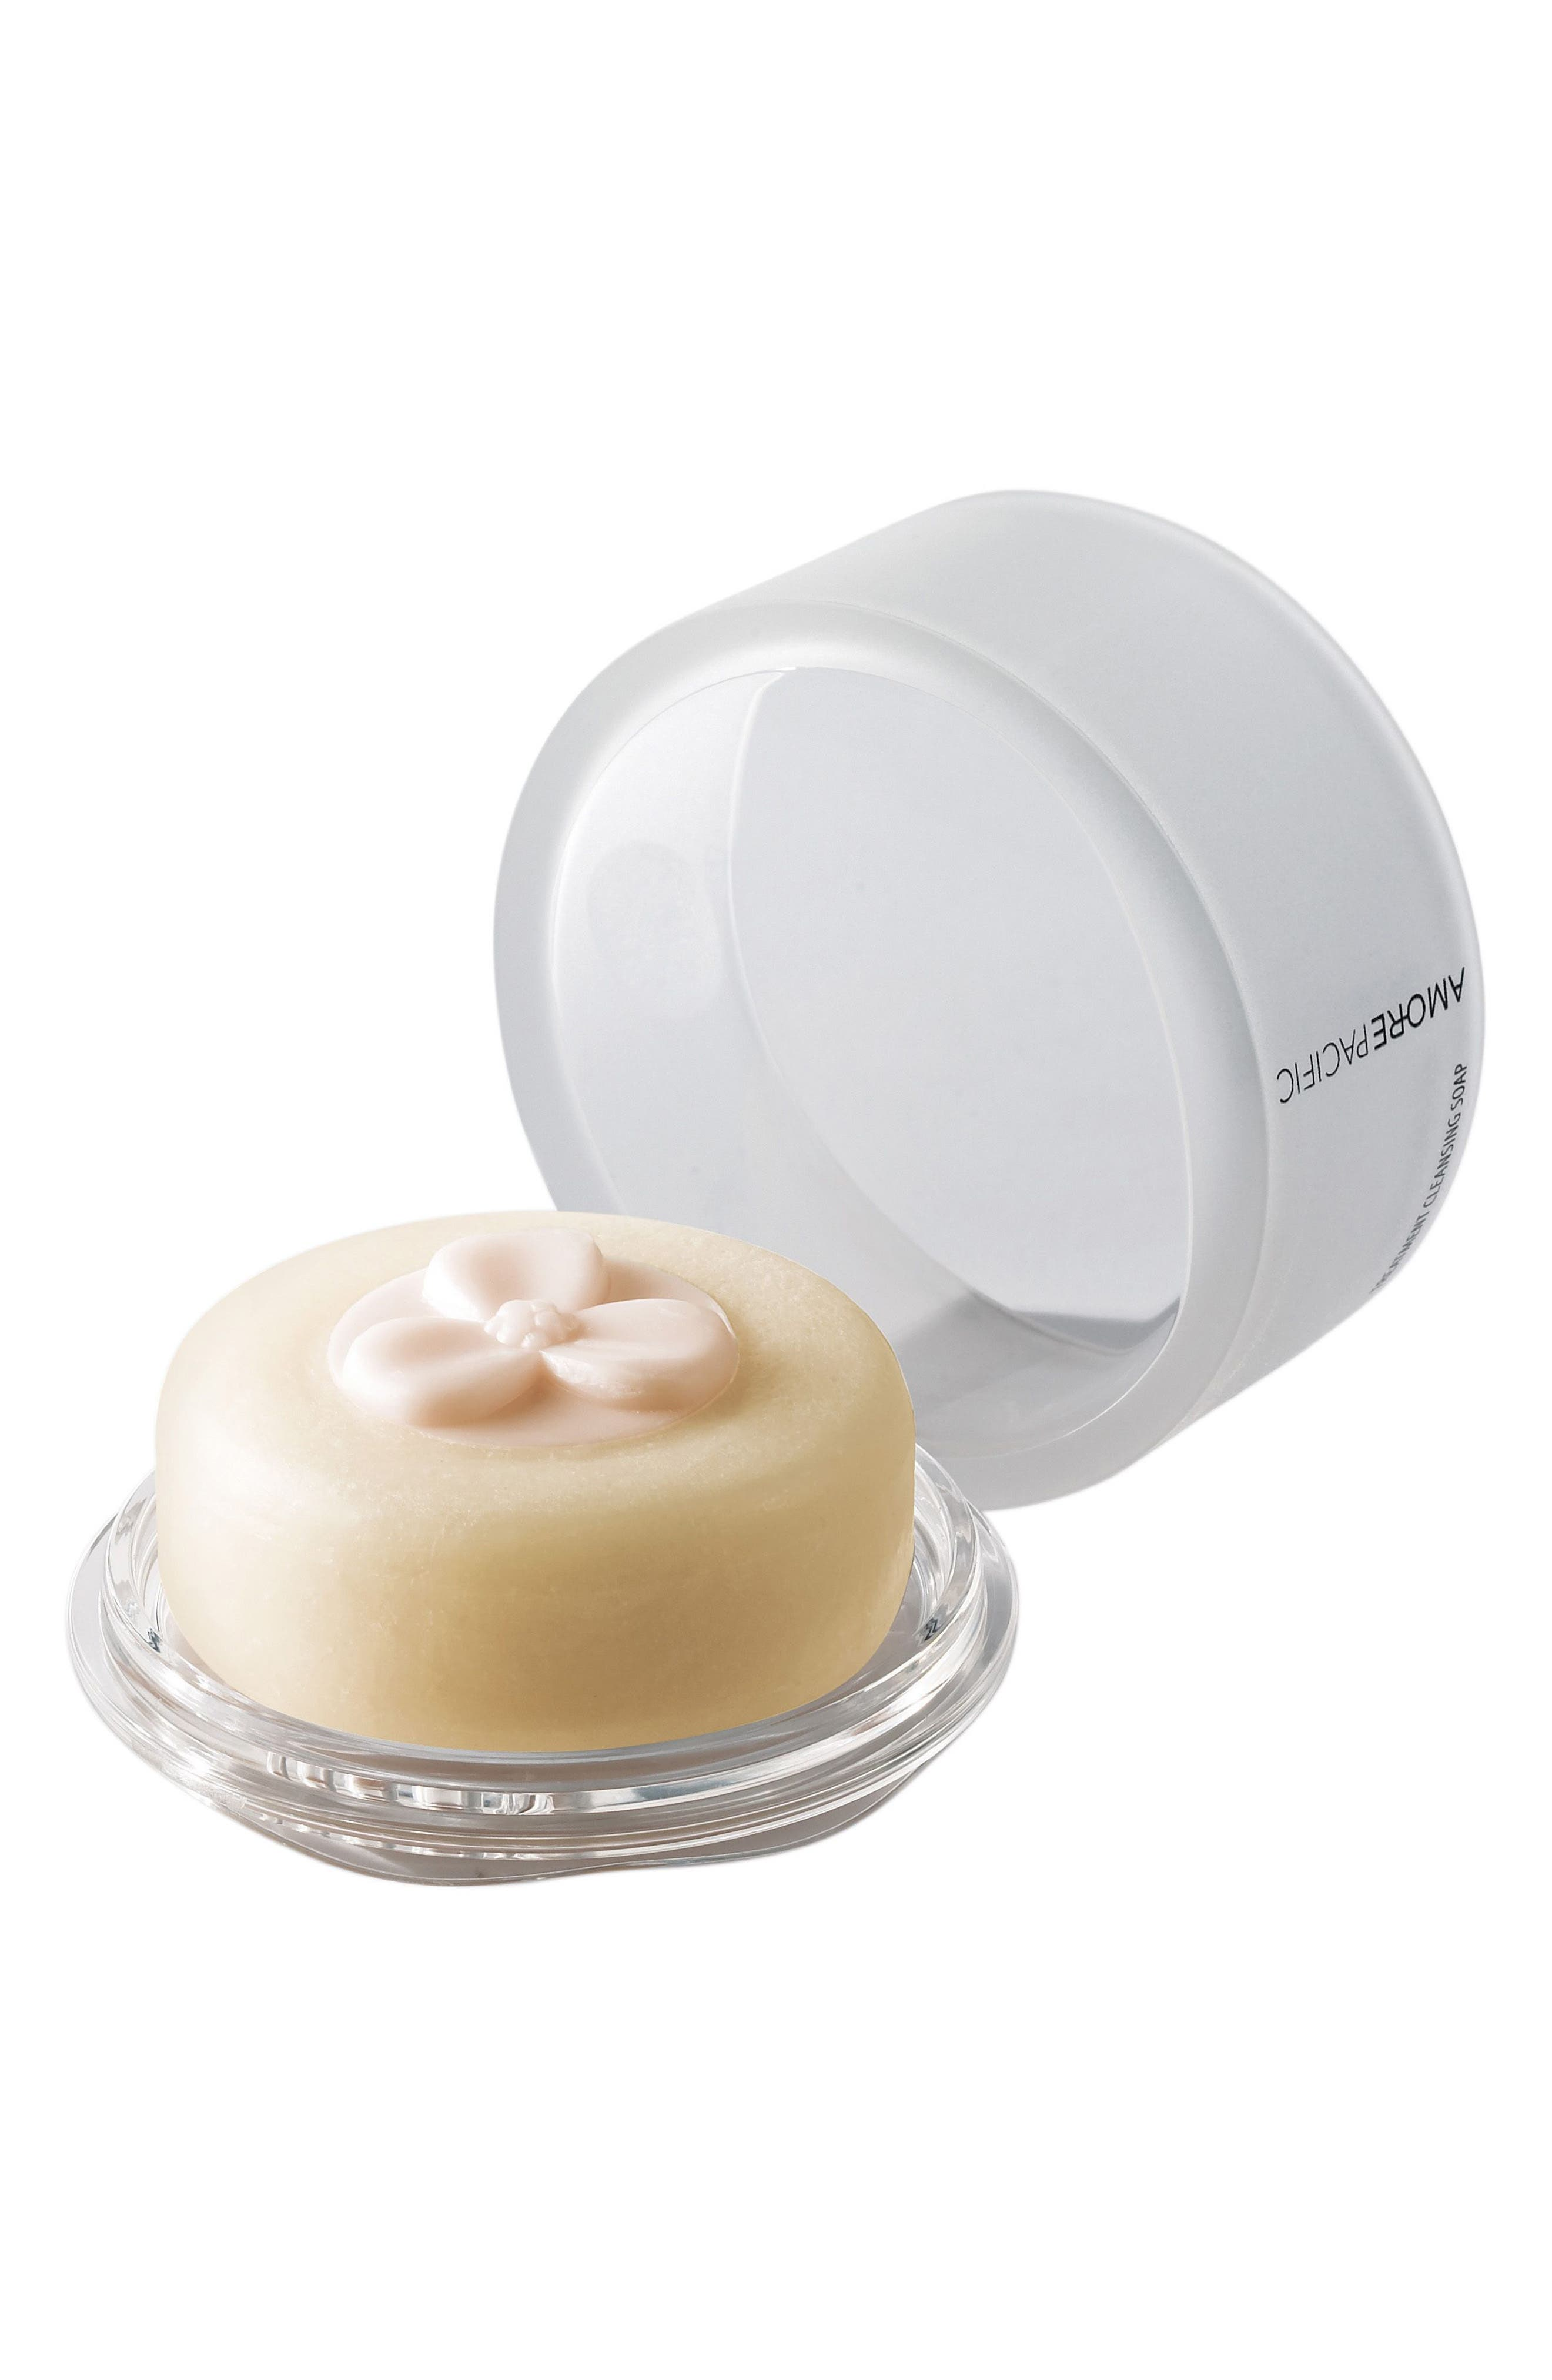 Alternate Image 1 Selected - AMOREPACIFIC 'Treatment' Cleansing Soap